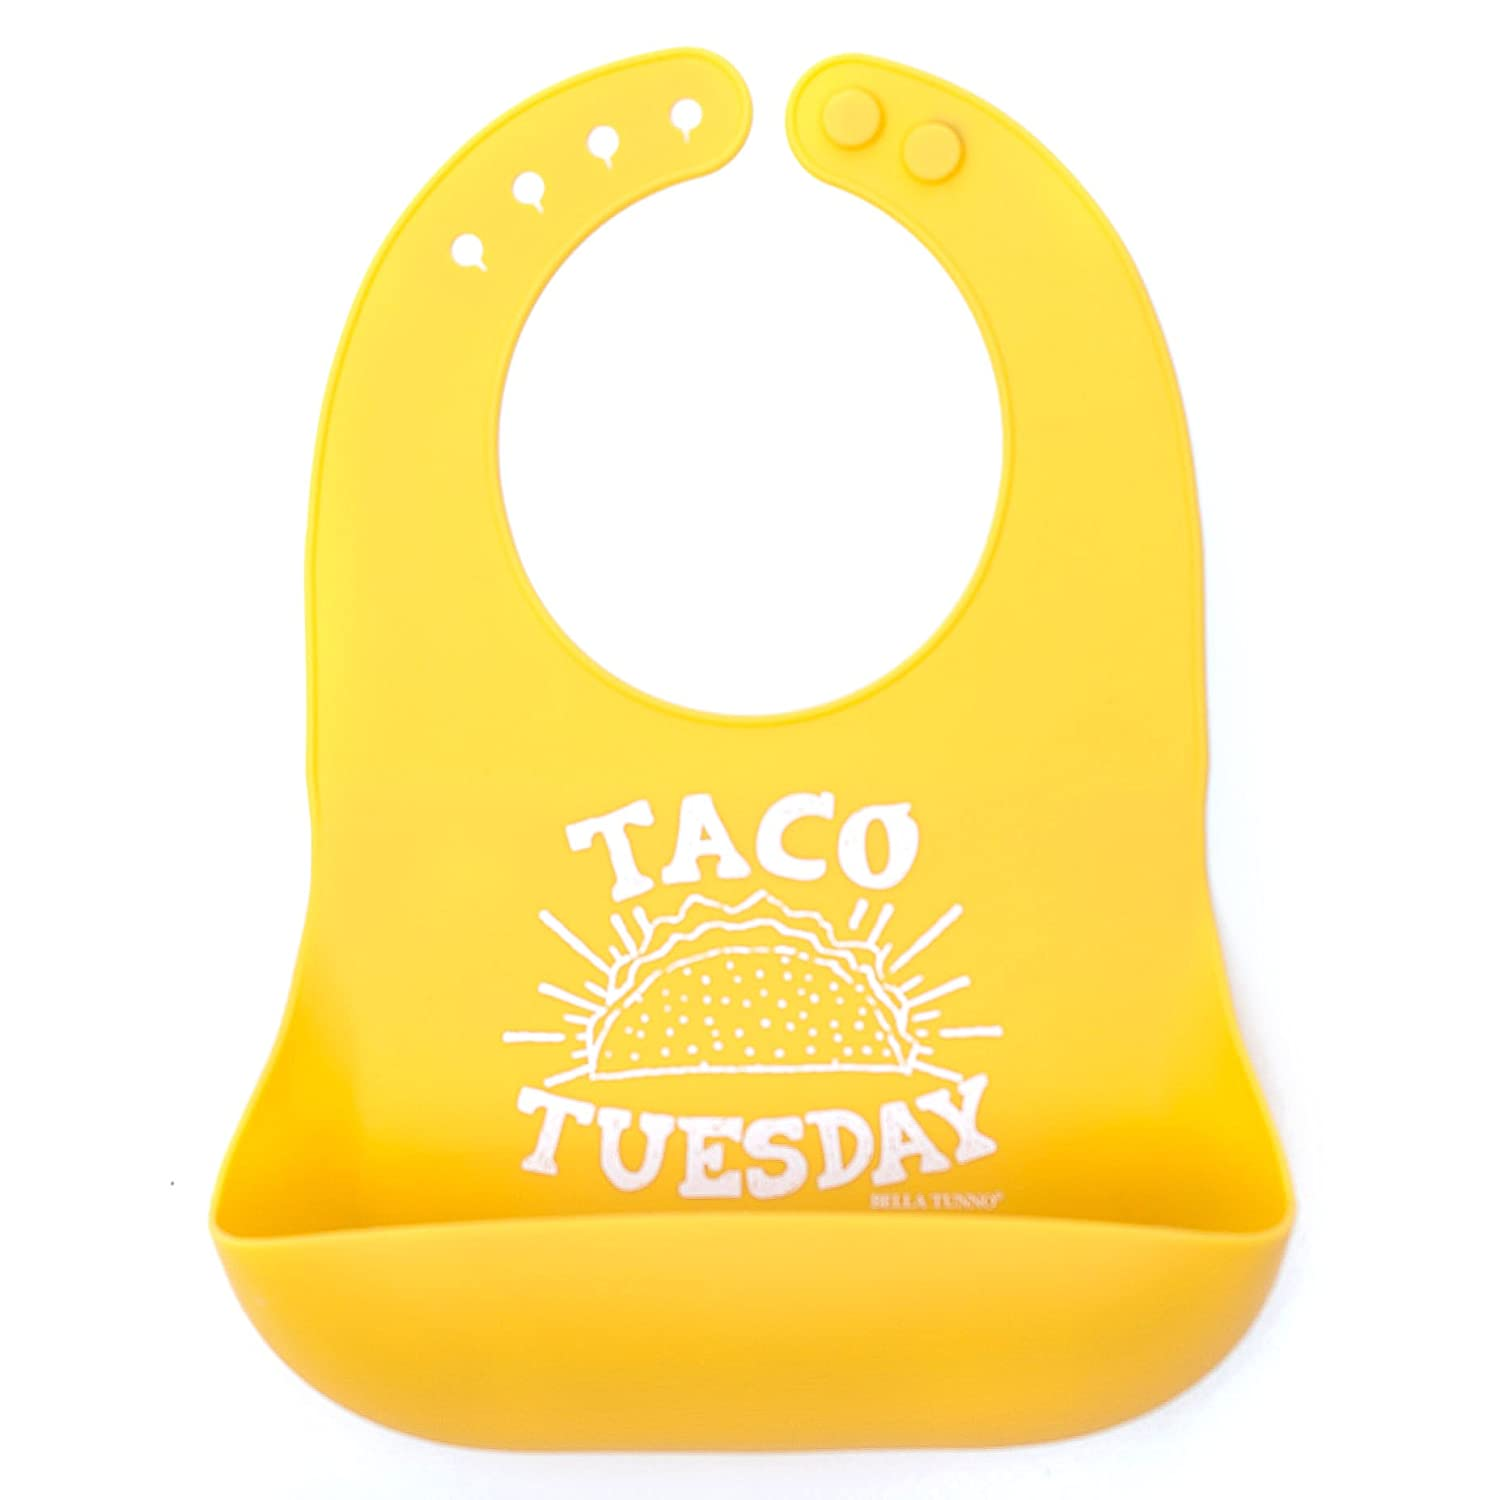 Taco Tuesday Bib.